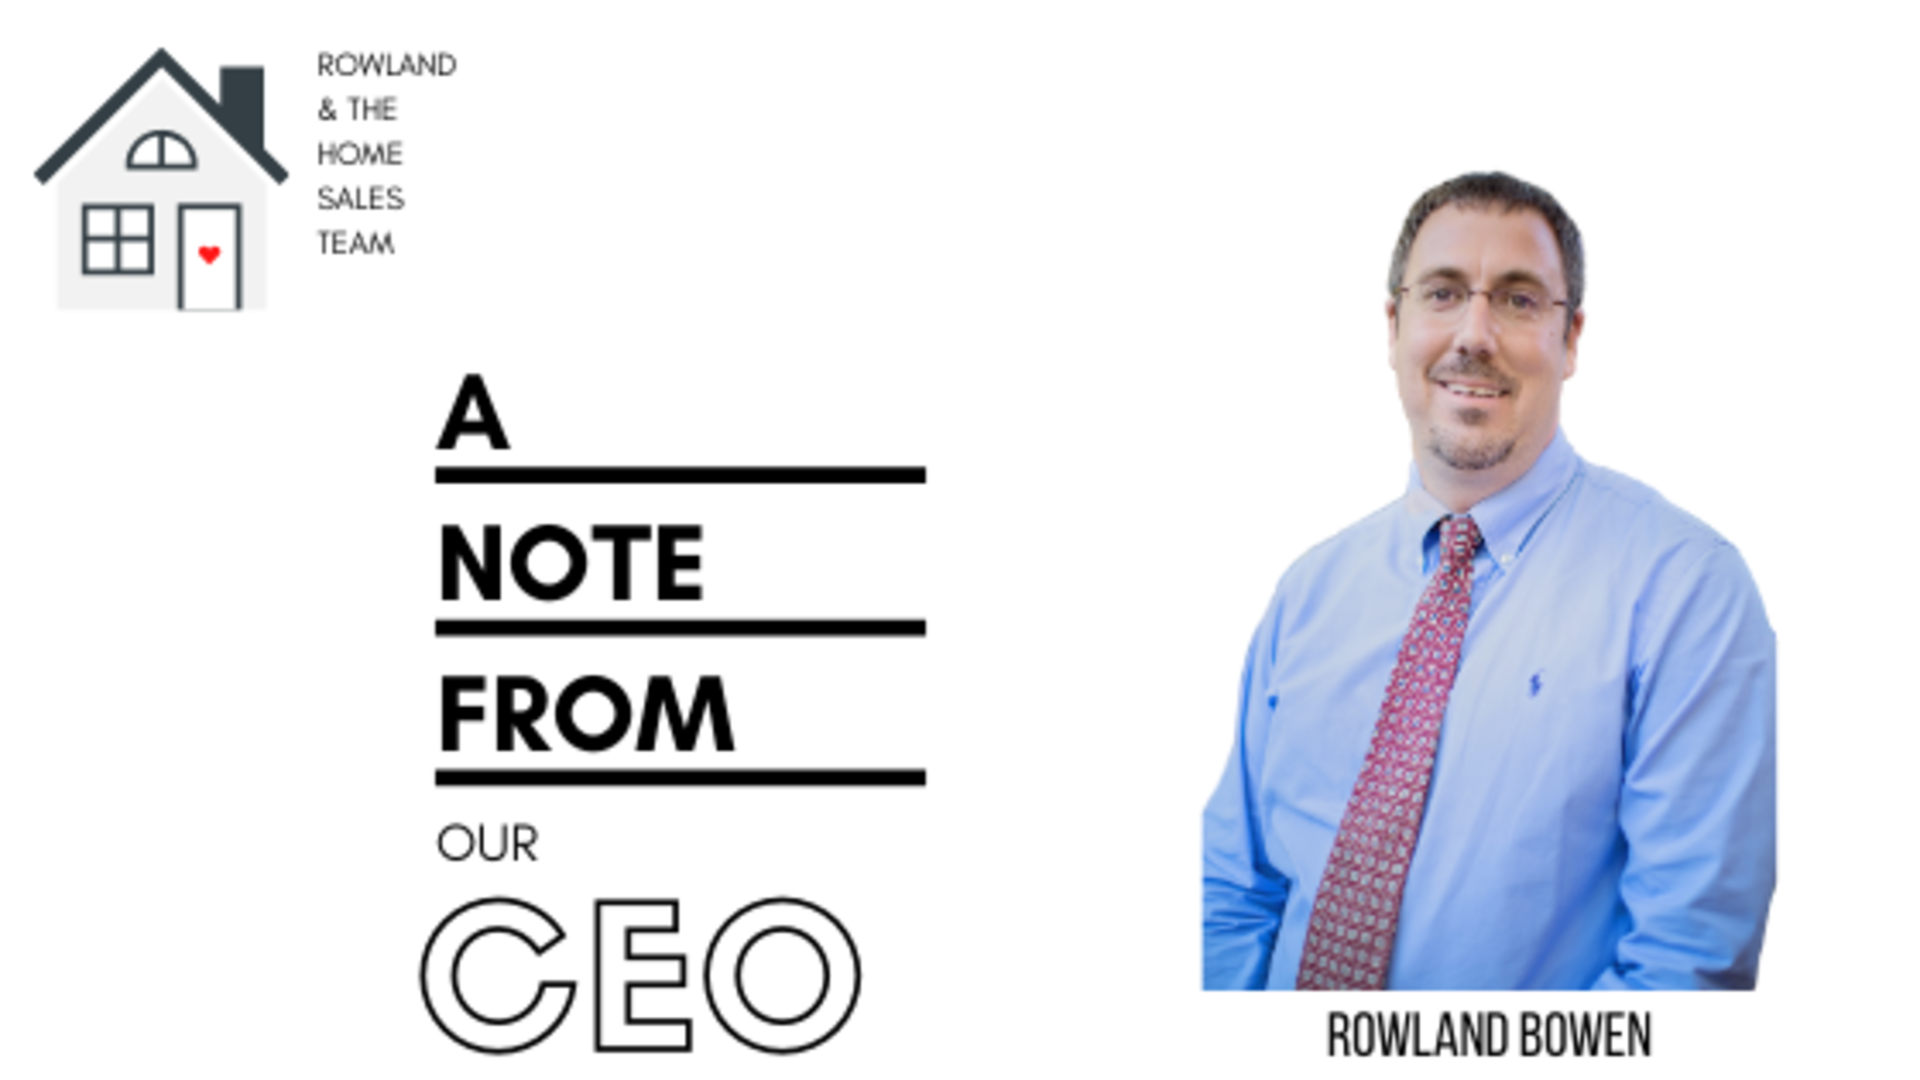 A Note from Our CEO